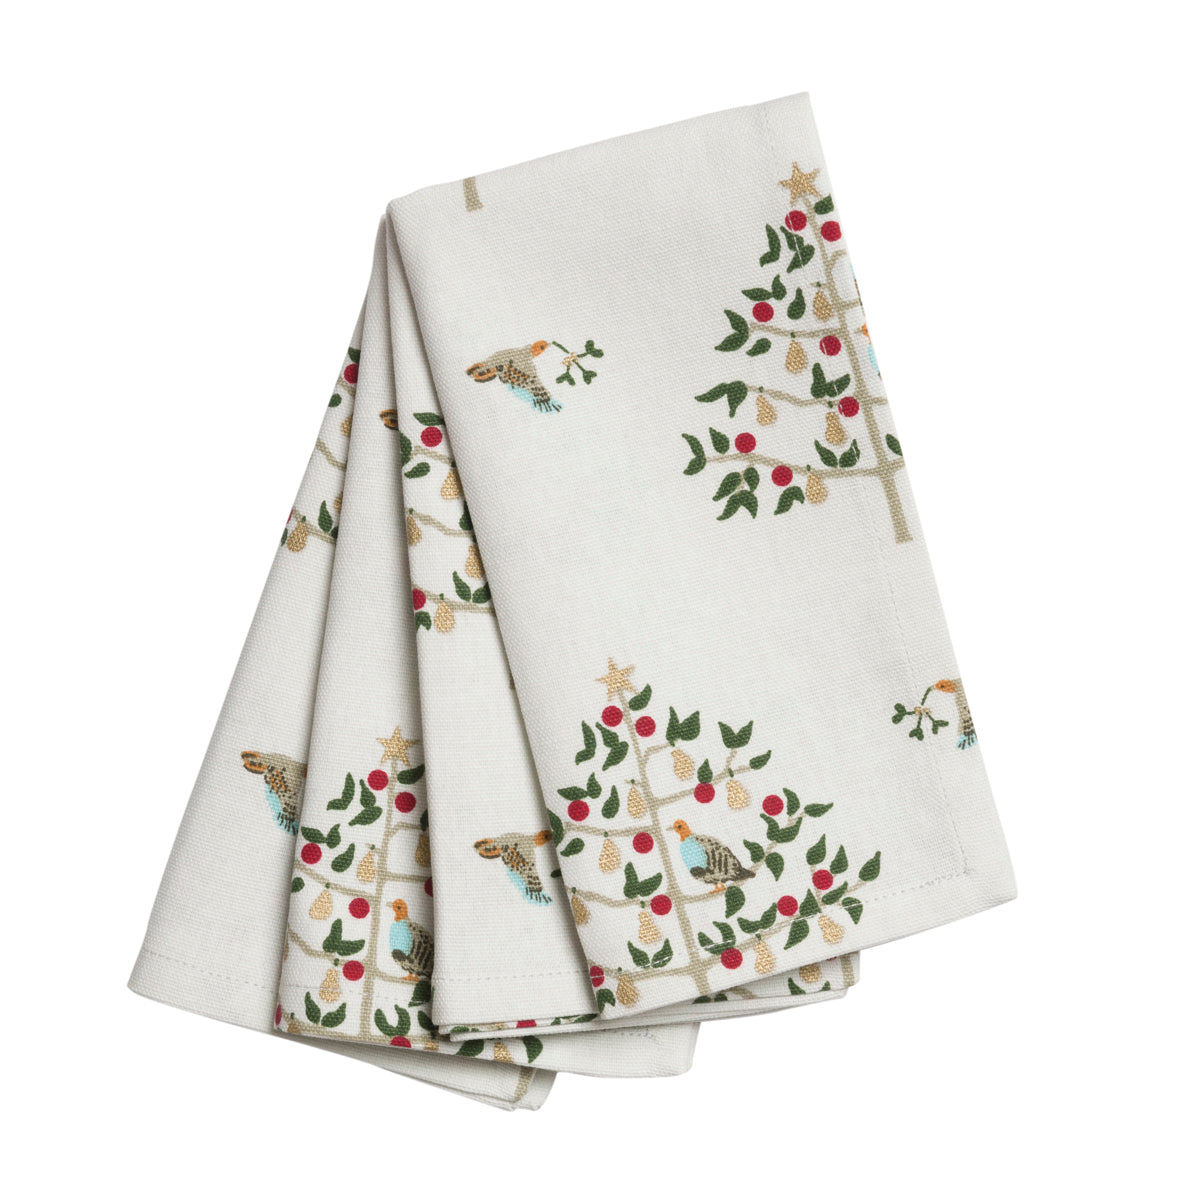 Partridge Napkins (Set of 4) Fabric Cotton